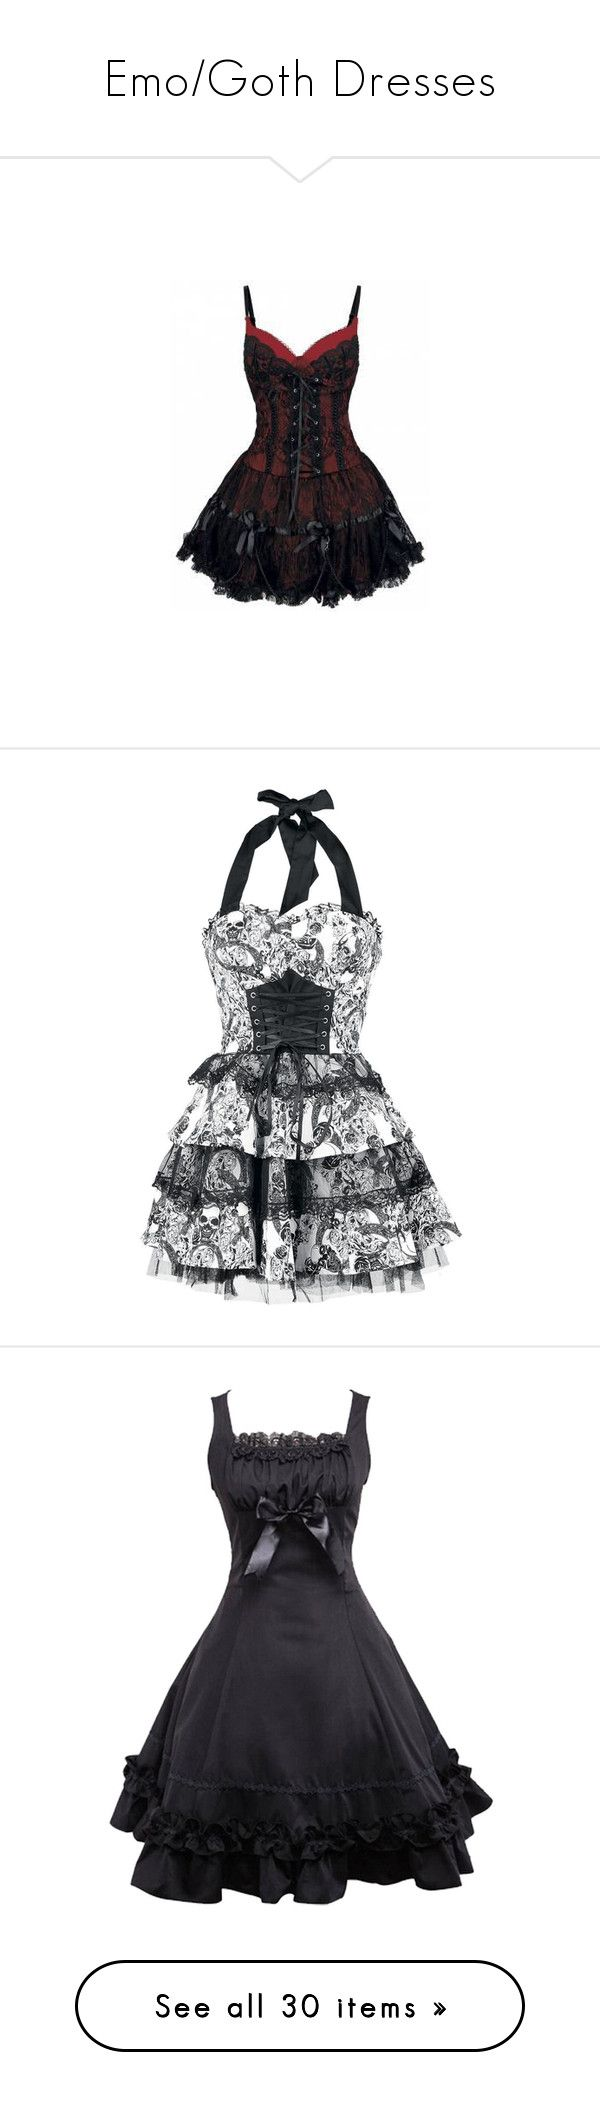 """""""Emo/Goth Dresses"""" by dreadful-glassheart ❤ liked on Polyvore featuring dresses, vestidos, short dresses, corsets, gothic corsets, metal corset, gothic dresses, gothic mini dress, corset cocktail dress and robe"""